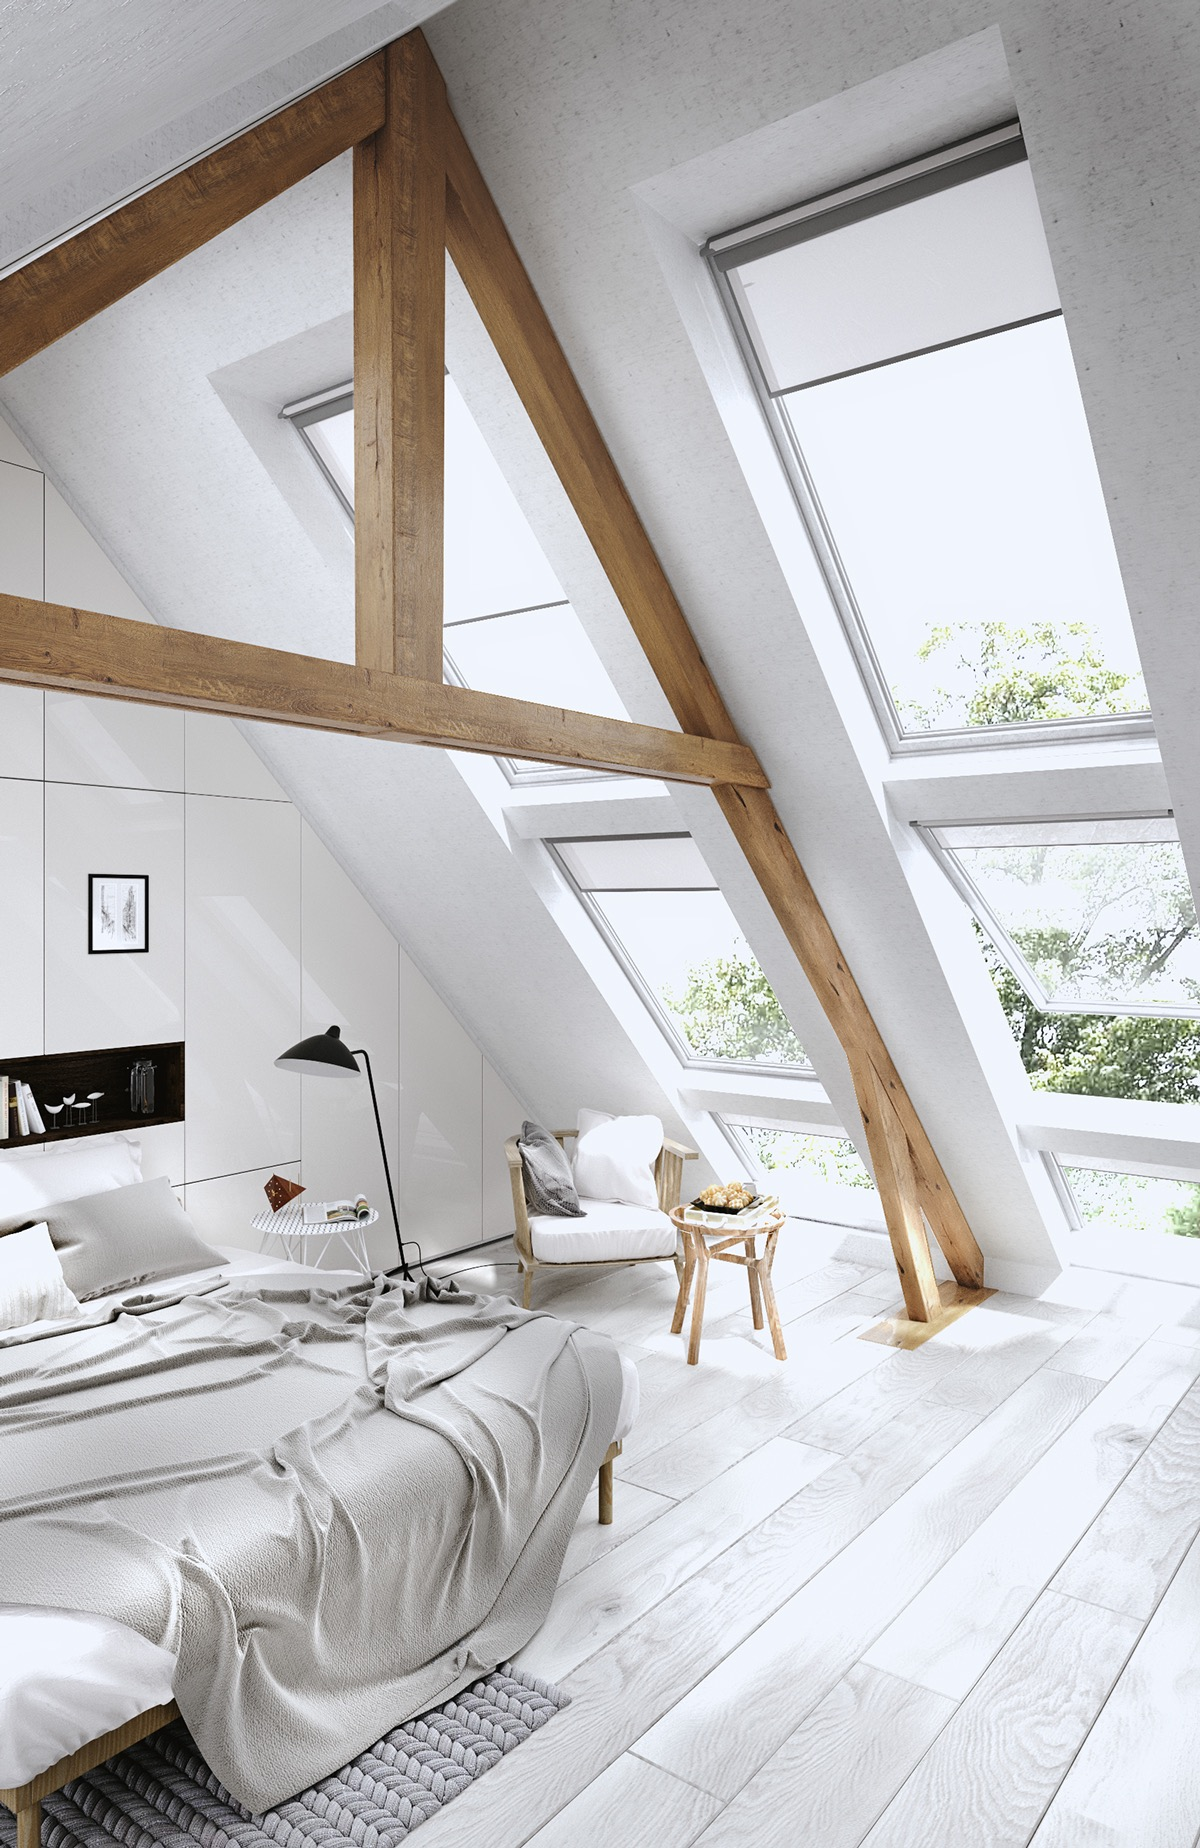 White Dreamy Attic Wood Beams - 25 amazing attic bedrooms that you would absolutely enjoy sleeping in